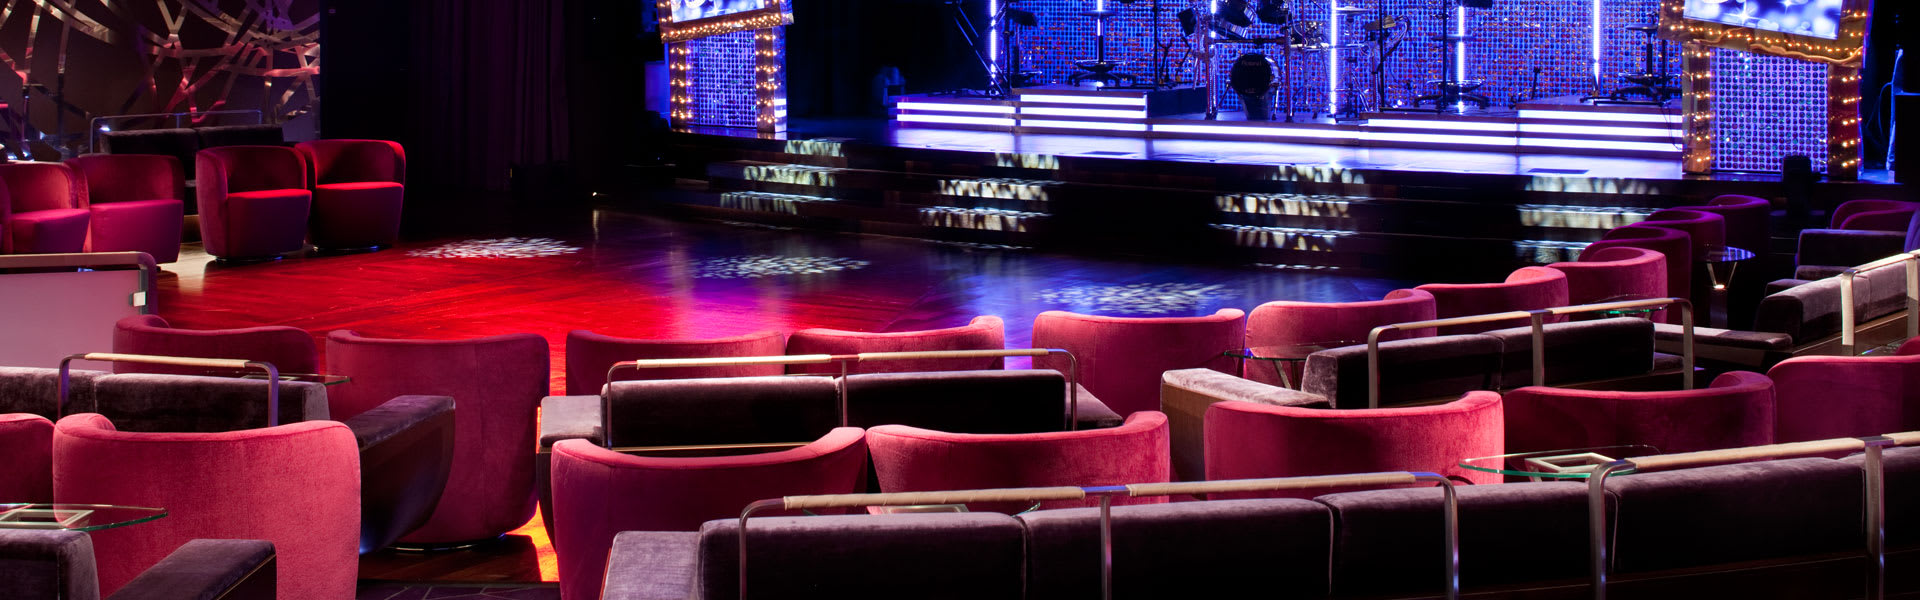 Seabourn Conversations Onboard Theater